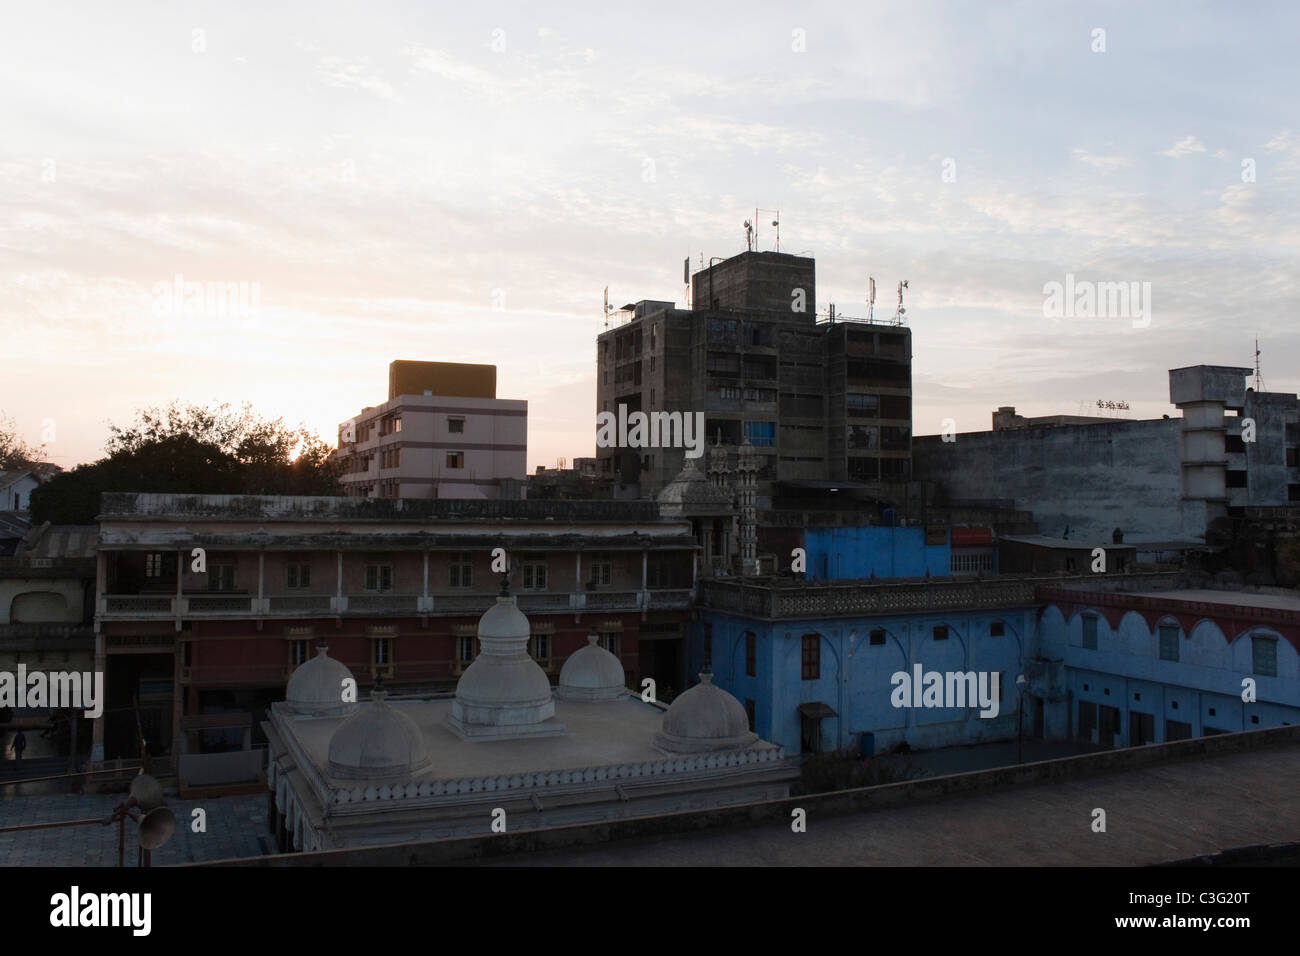 Buildings in a city, Ahmedabad, Gujarat, India - Stock Image